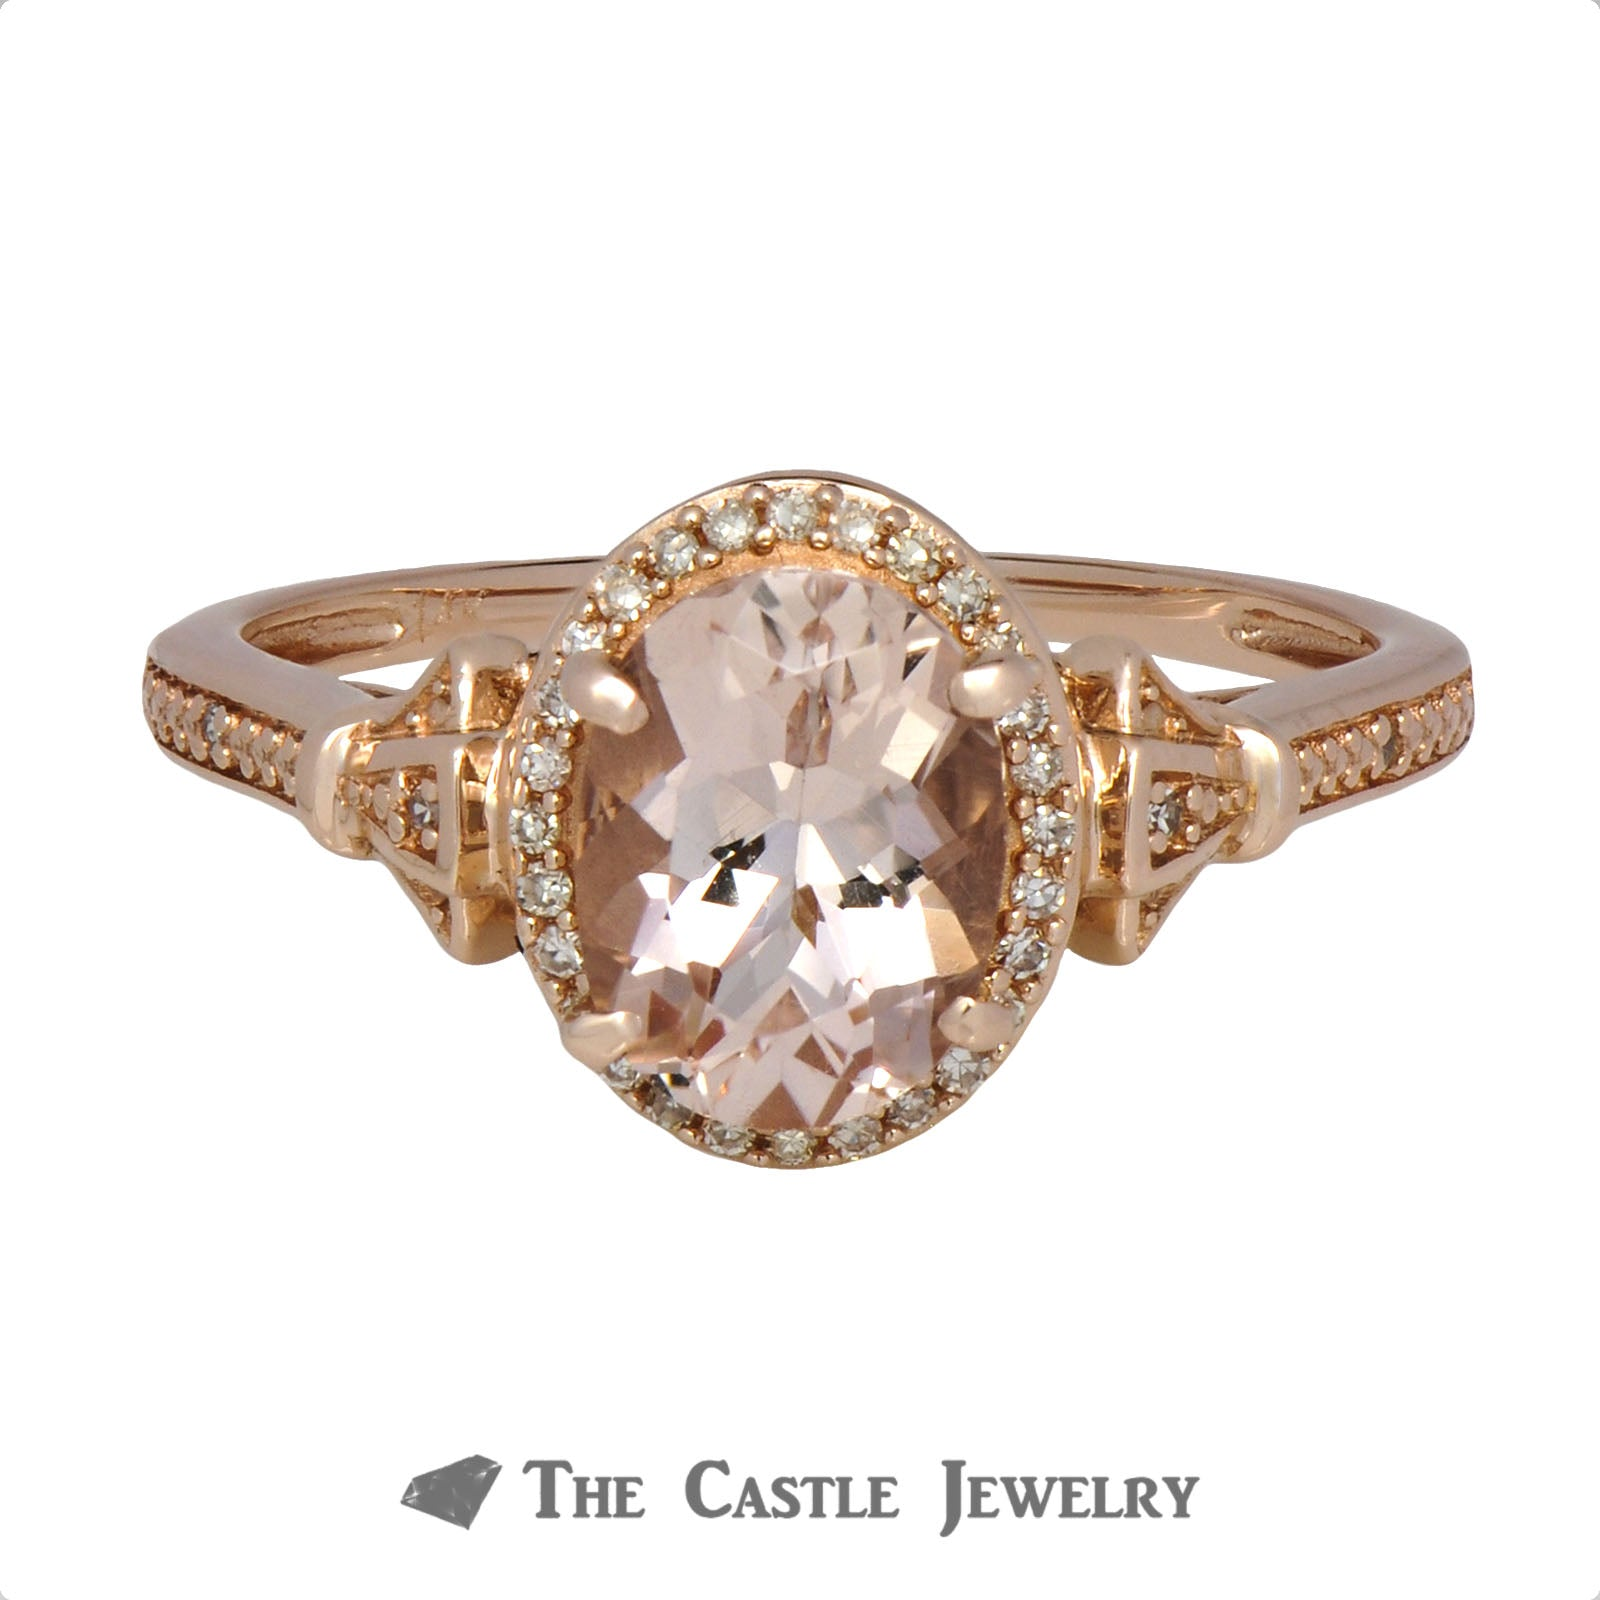 Oval Morganite Ring with Diamond Accents in 10K Rose Gold